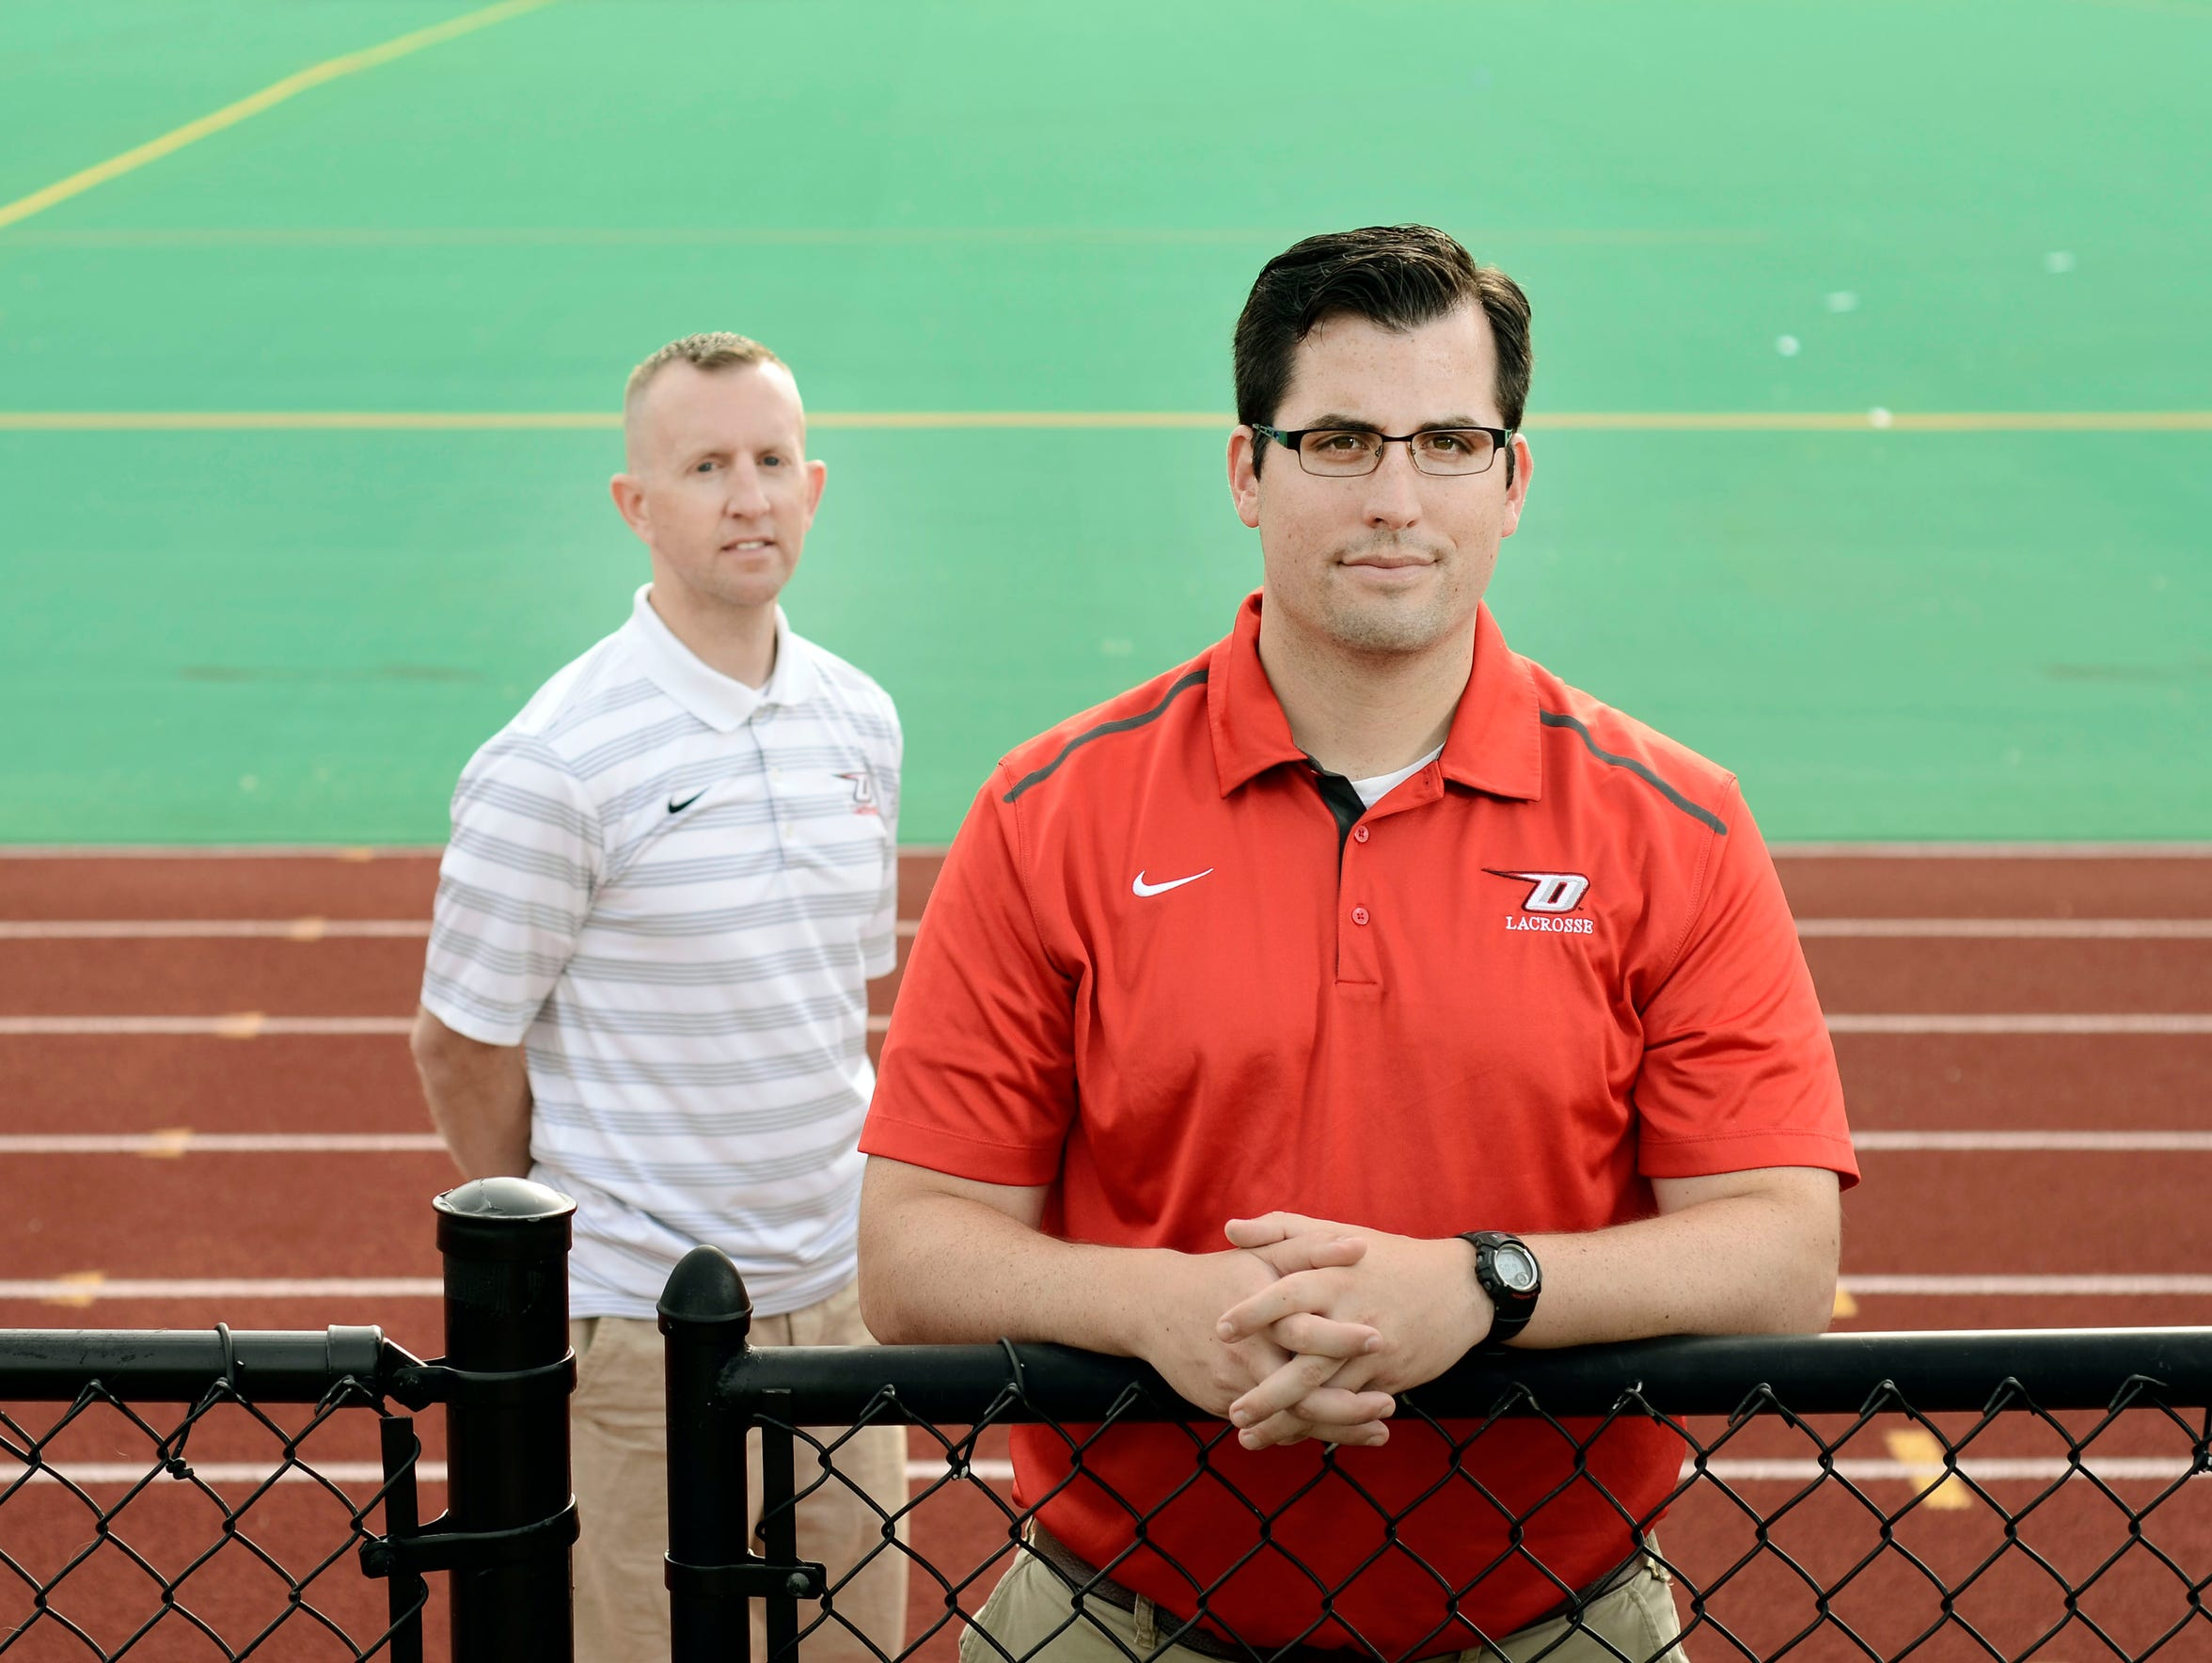 Dan Mahar and Andrew McIntosh, now coaching together,